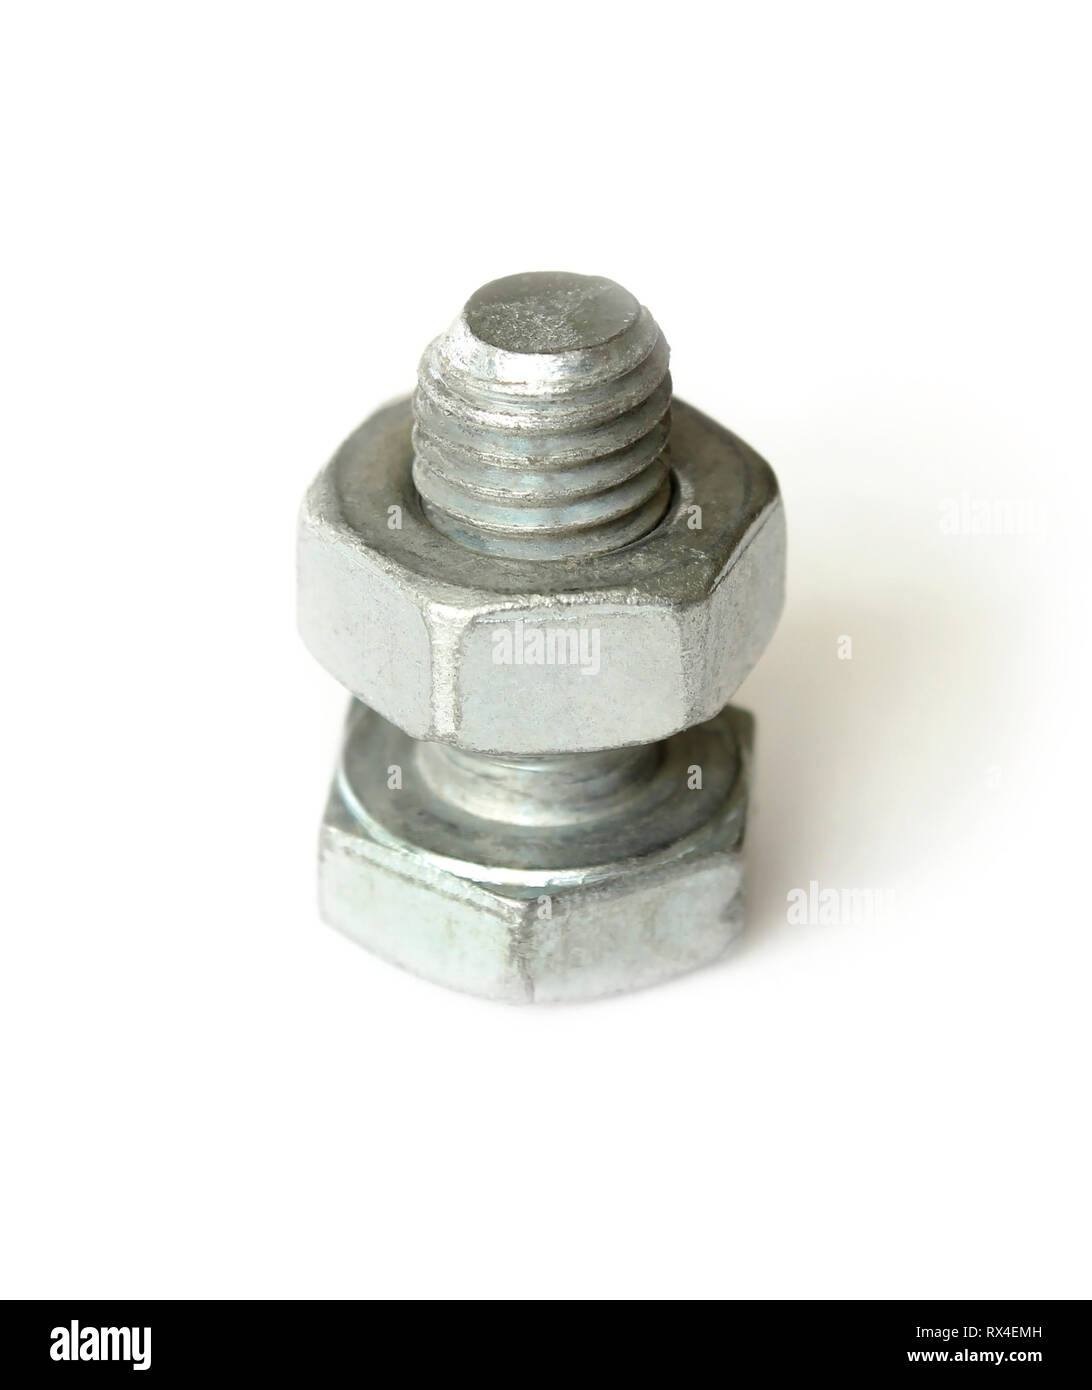 Screw bolt with nut on it isolated on a white background - Stock Image